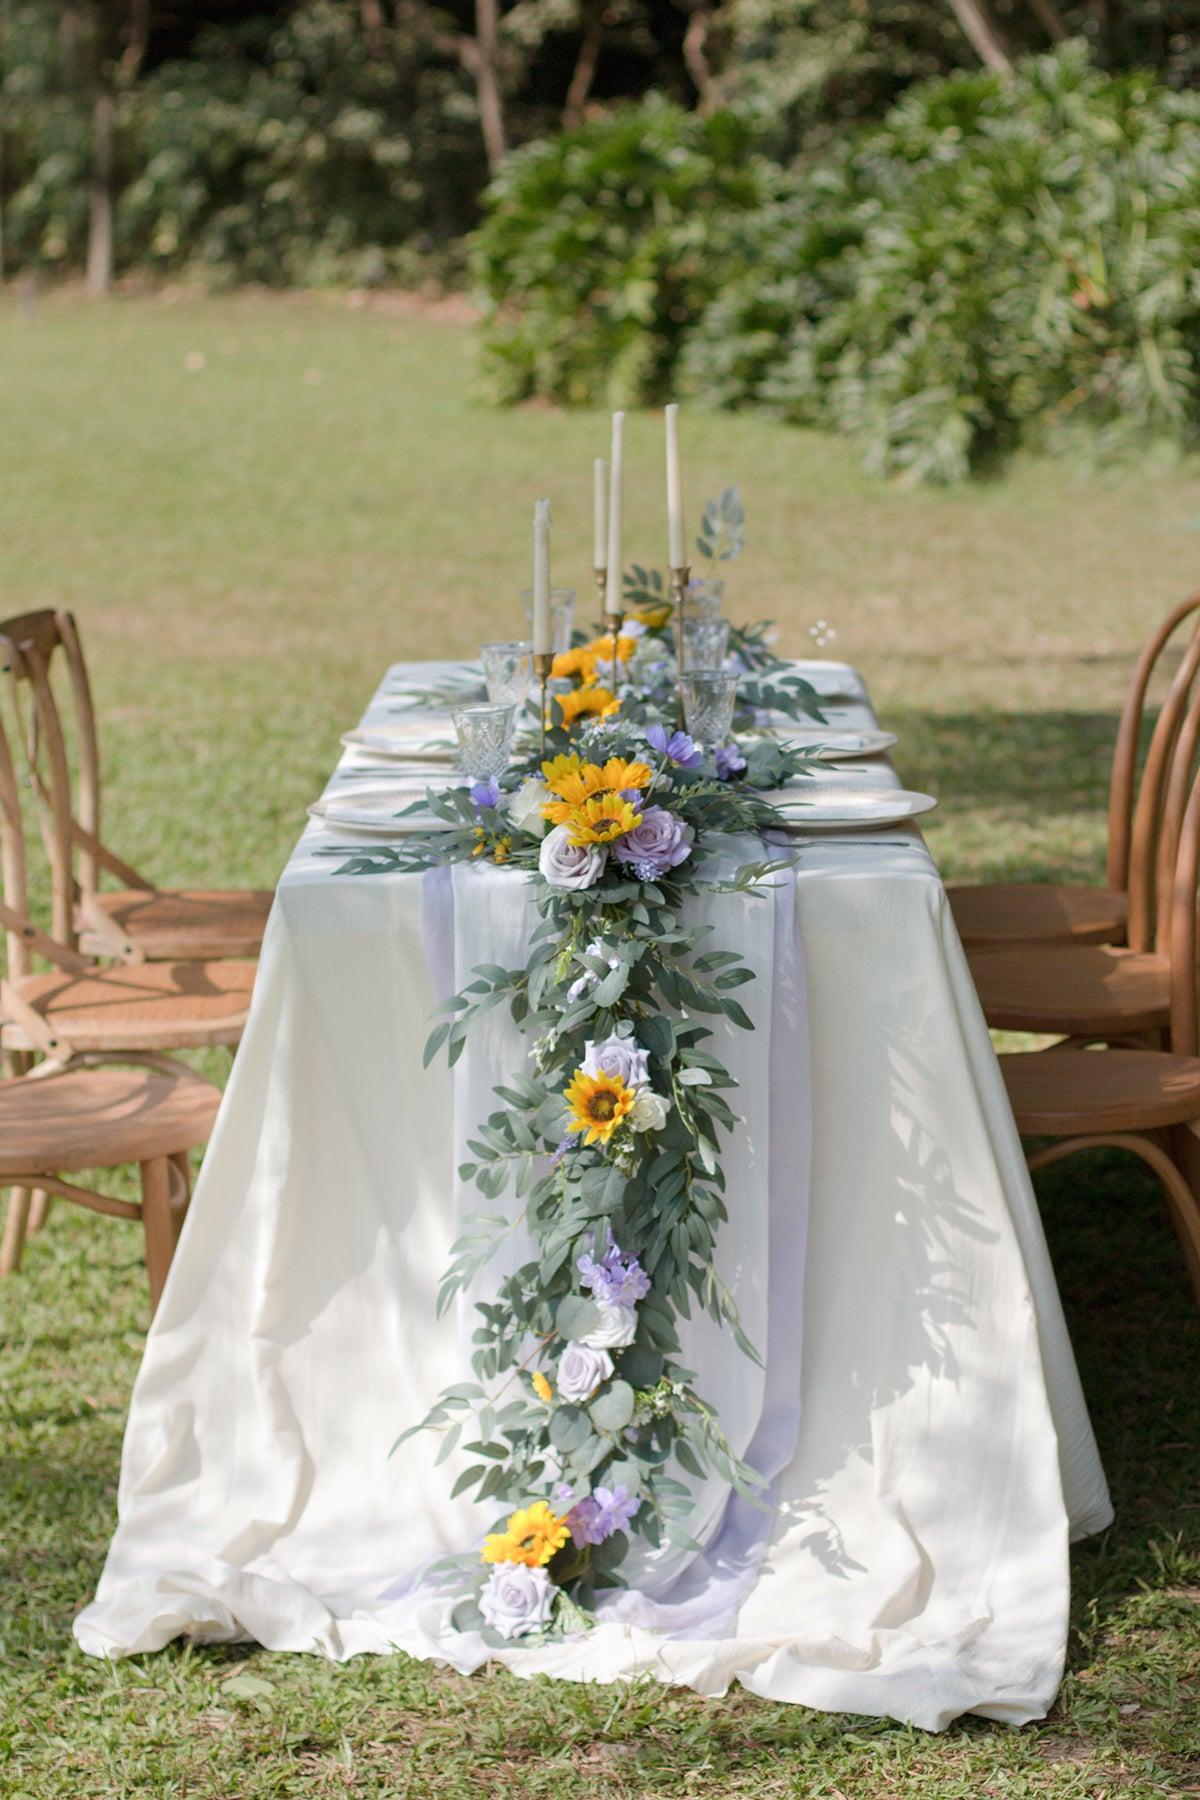 Eucalyptus and Willow Leaf Flower Garland 6.5FT - Sunflowers & Lavender